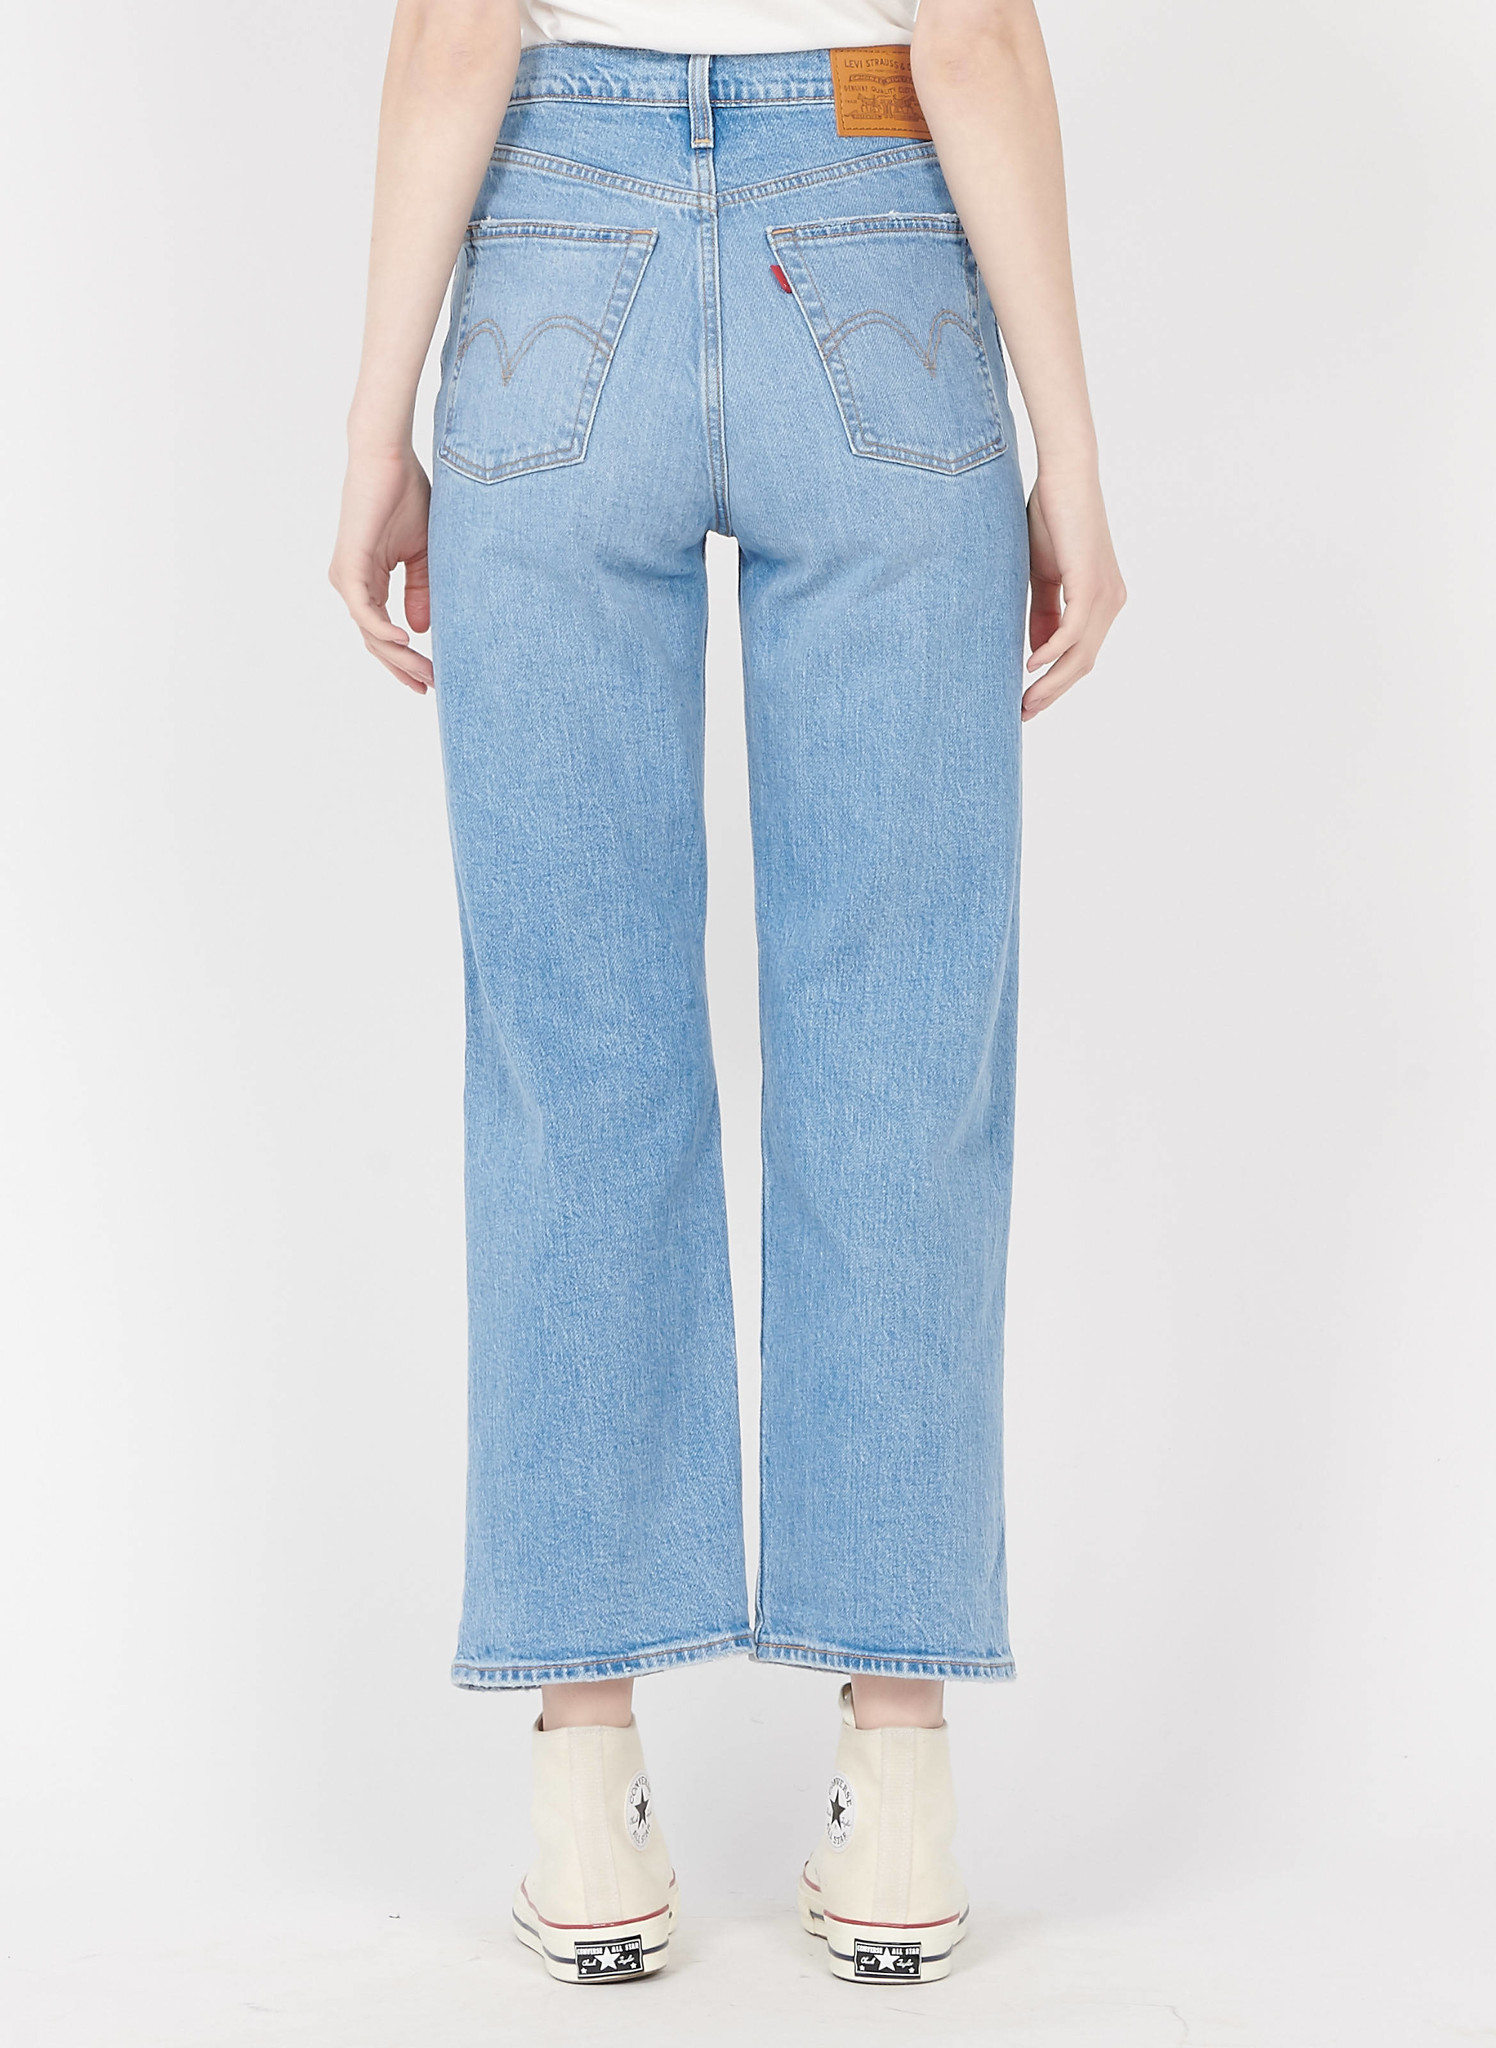 LEVIS ribcage straight ankle-2